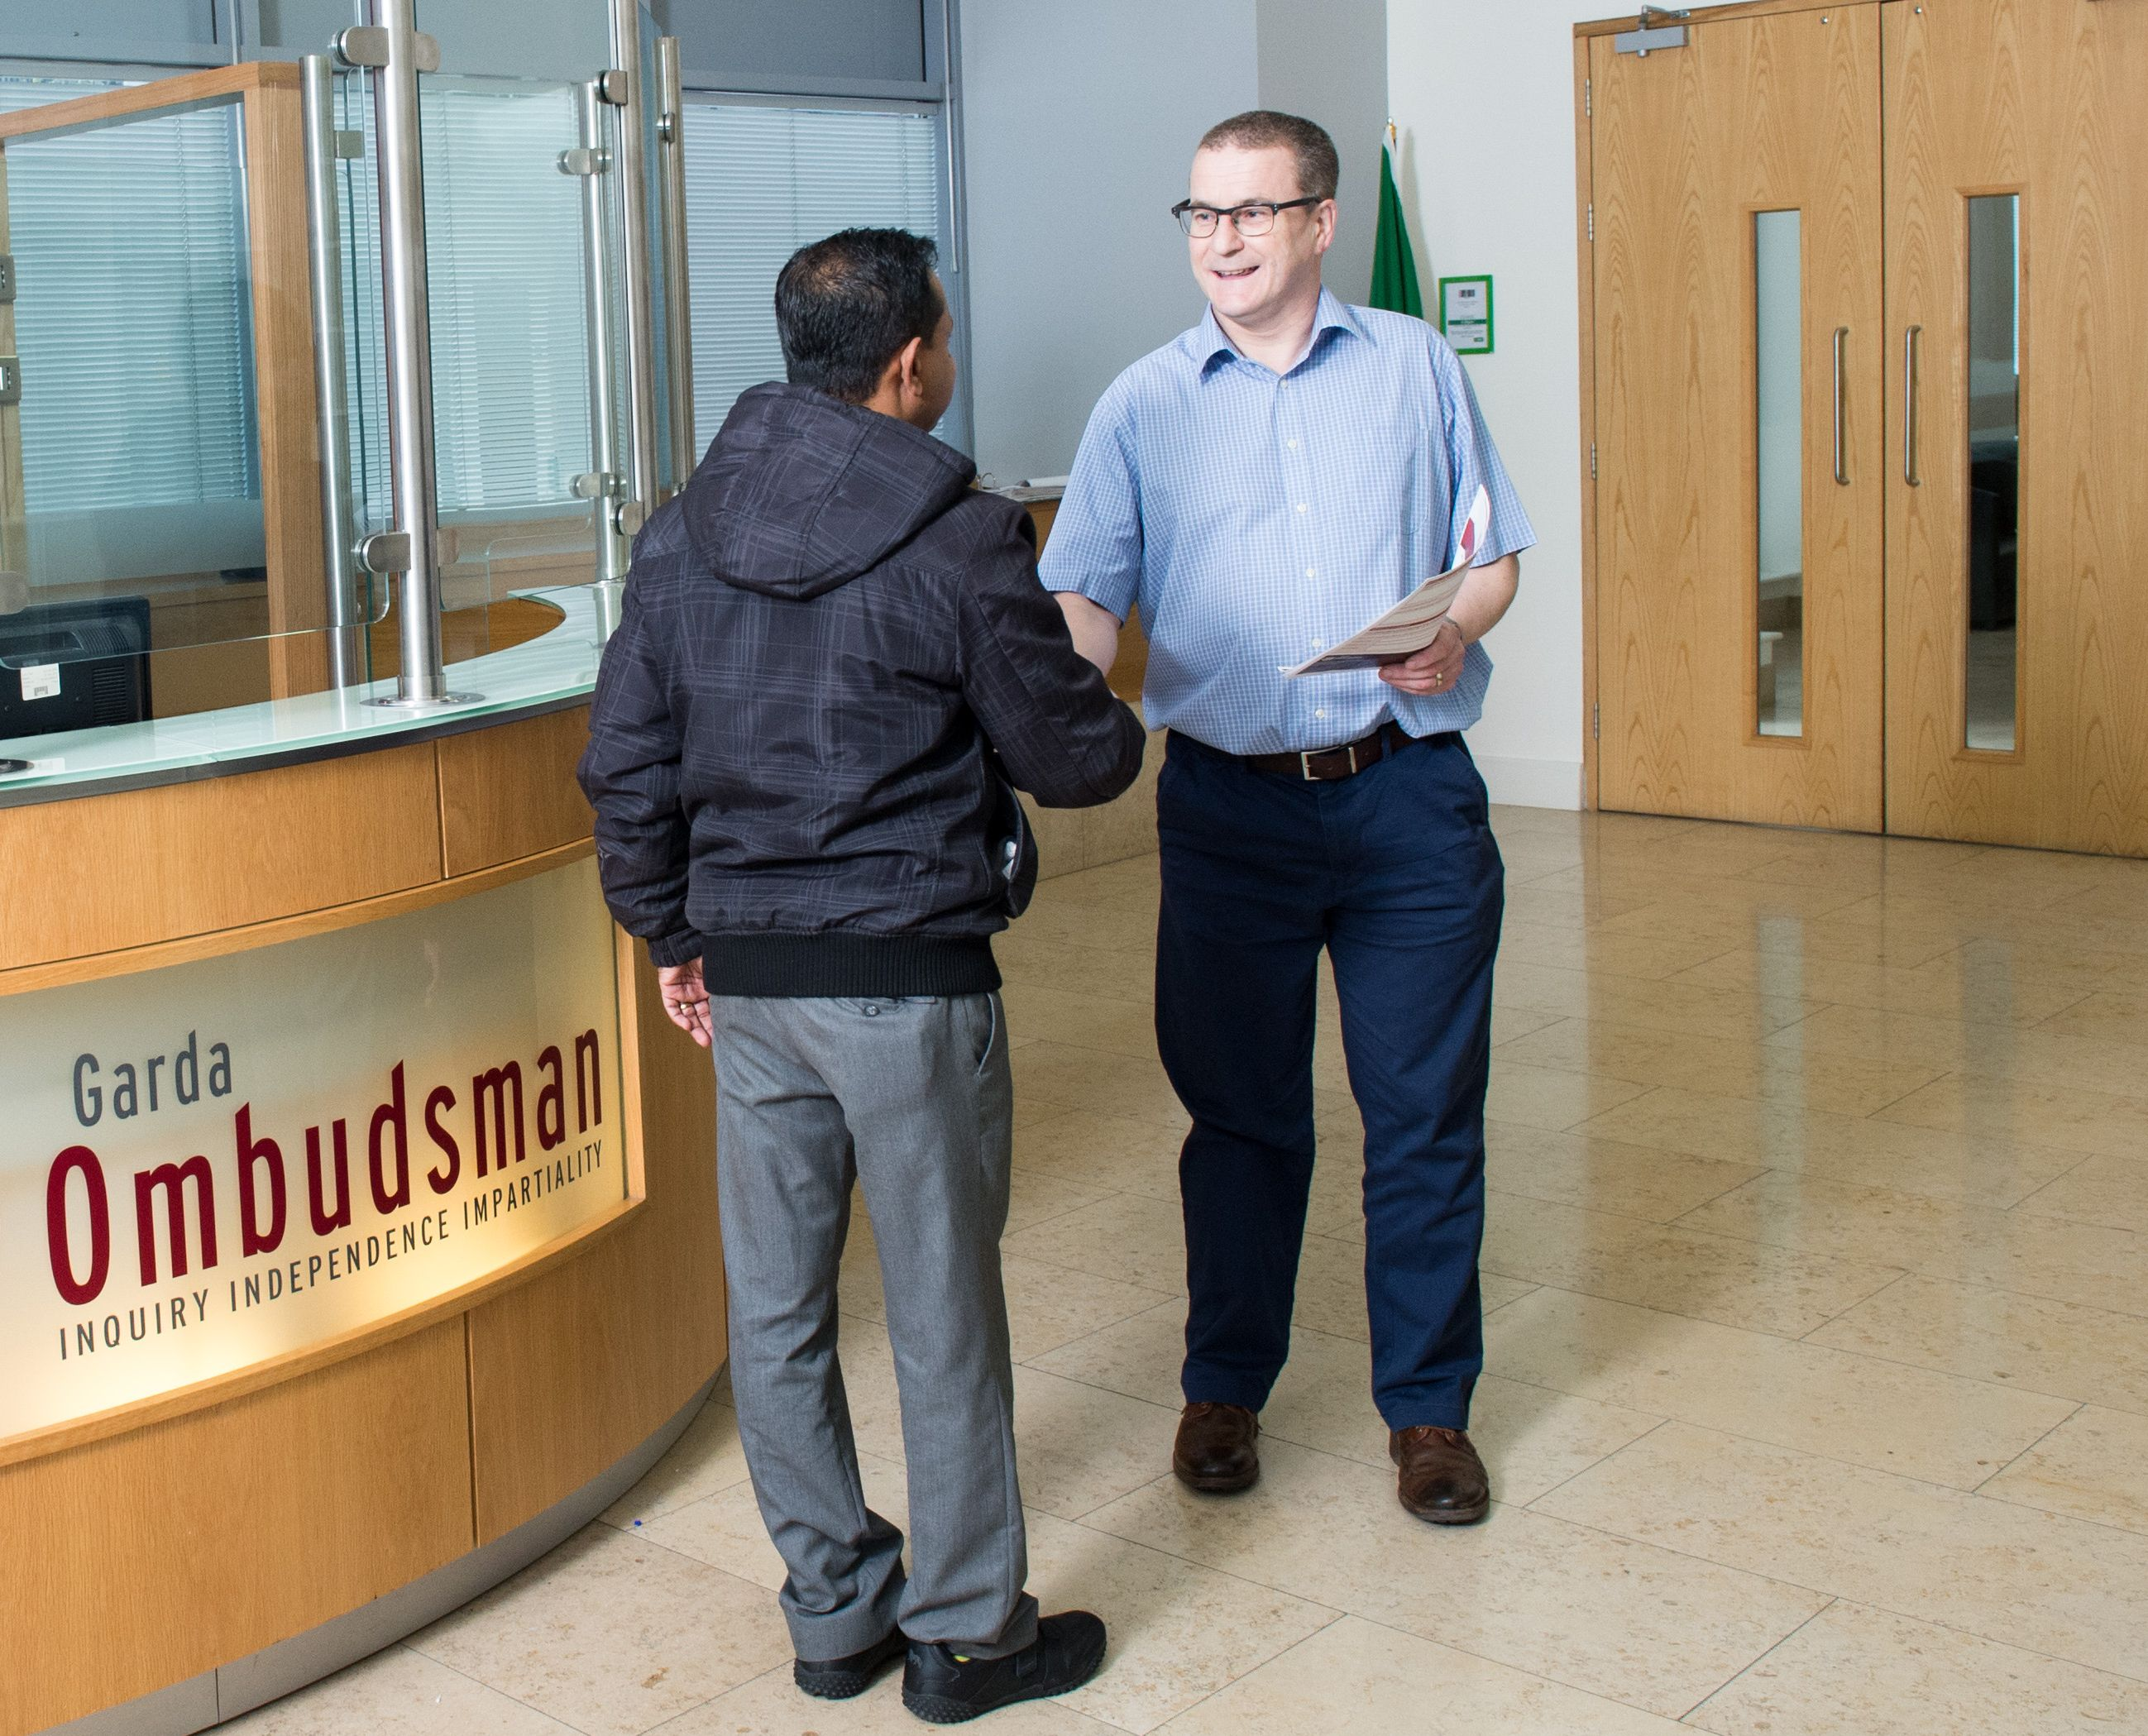 Man being welcomed by a Garda Ombudsman member of staff